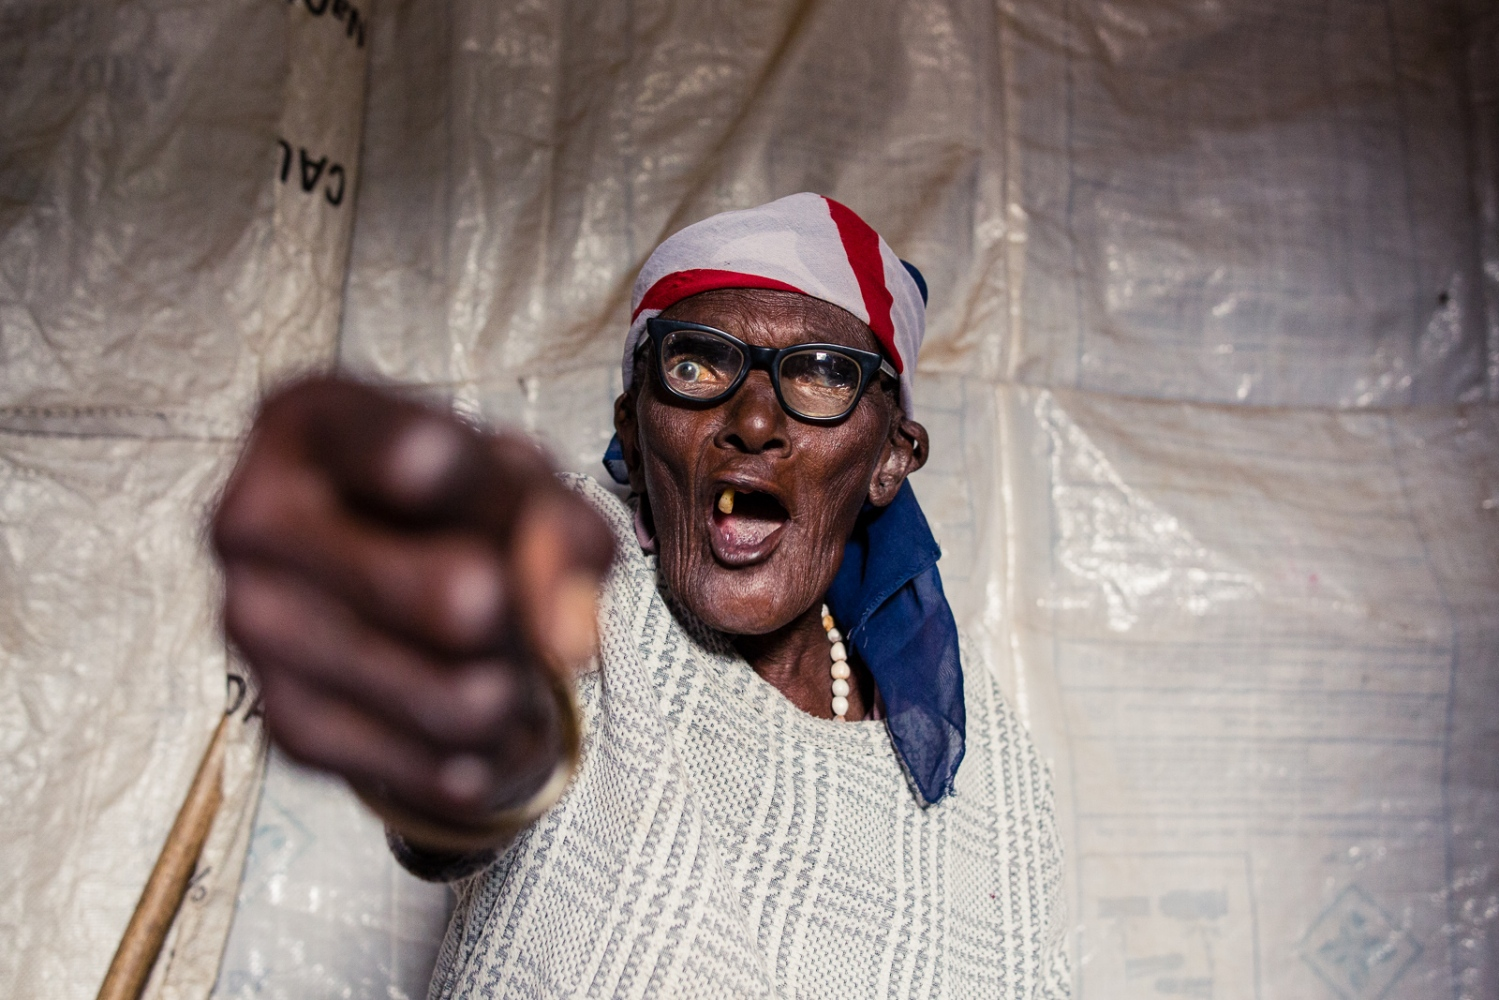 Nairobi, KENYA, February 28, 2017: Helen Wairimu, 106, is the oldest participant of the 'Shosho Jikinge' group in the Korogocho township. A rape survivor, Helen has been training self-defense techniques with around 20 other ladies, aged between 55-106 years, for six years. In 2016, a heavy-set, young man came to Helen's hut and raped her. Helen still participates in the class every week, eager to encourage the other women to train harder through her role as a survivor.